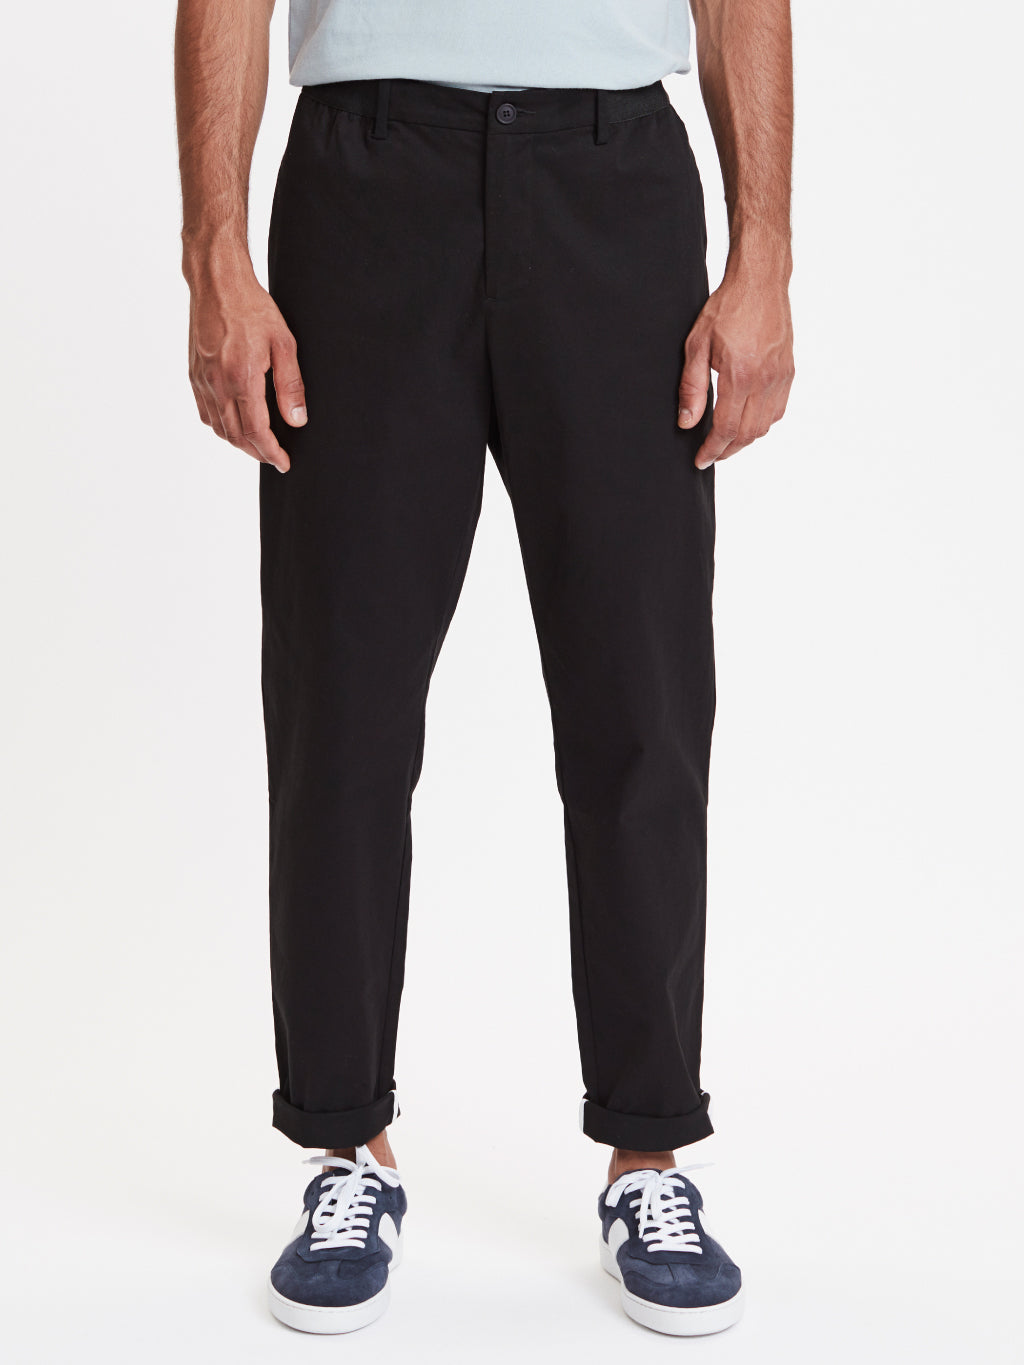 Century Trousers | Black